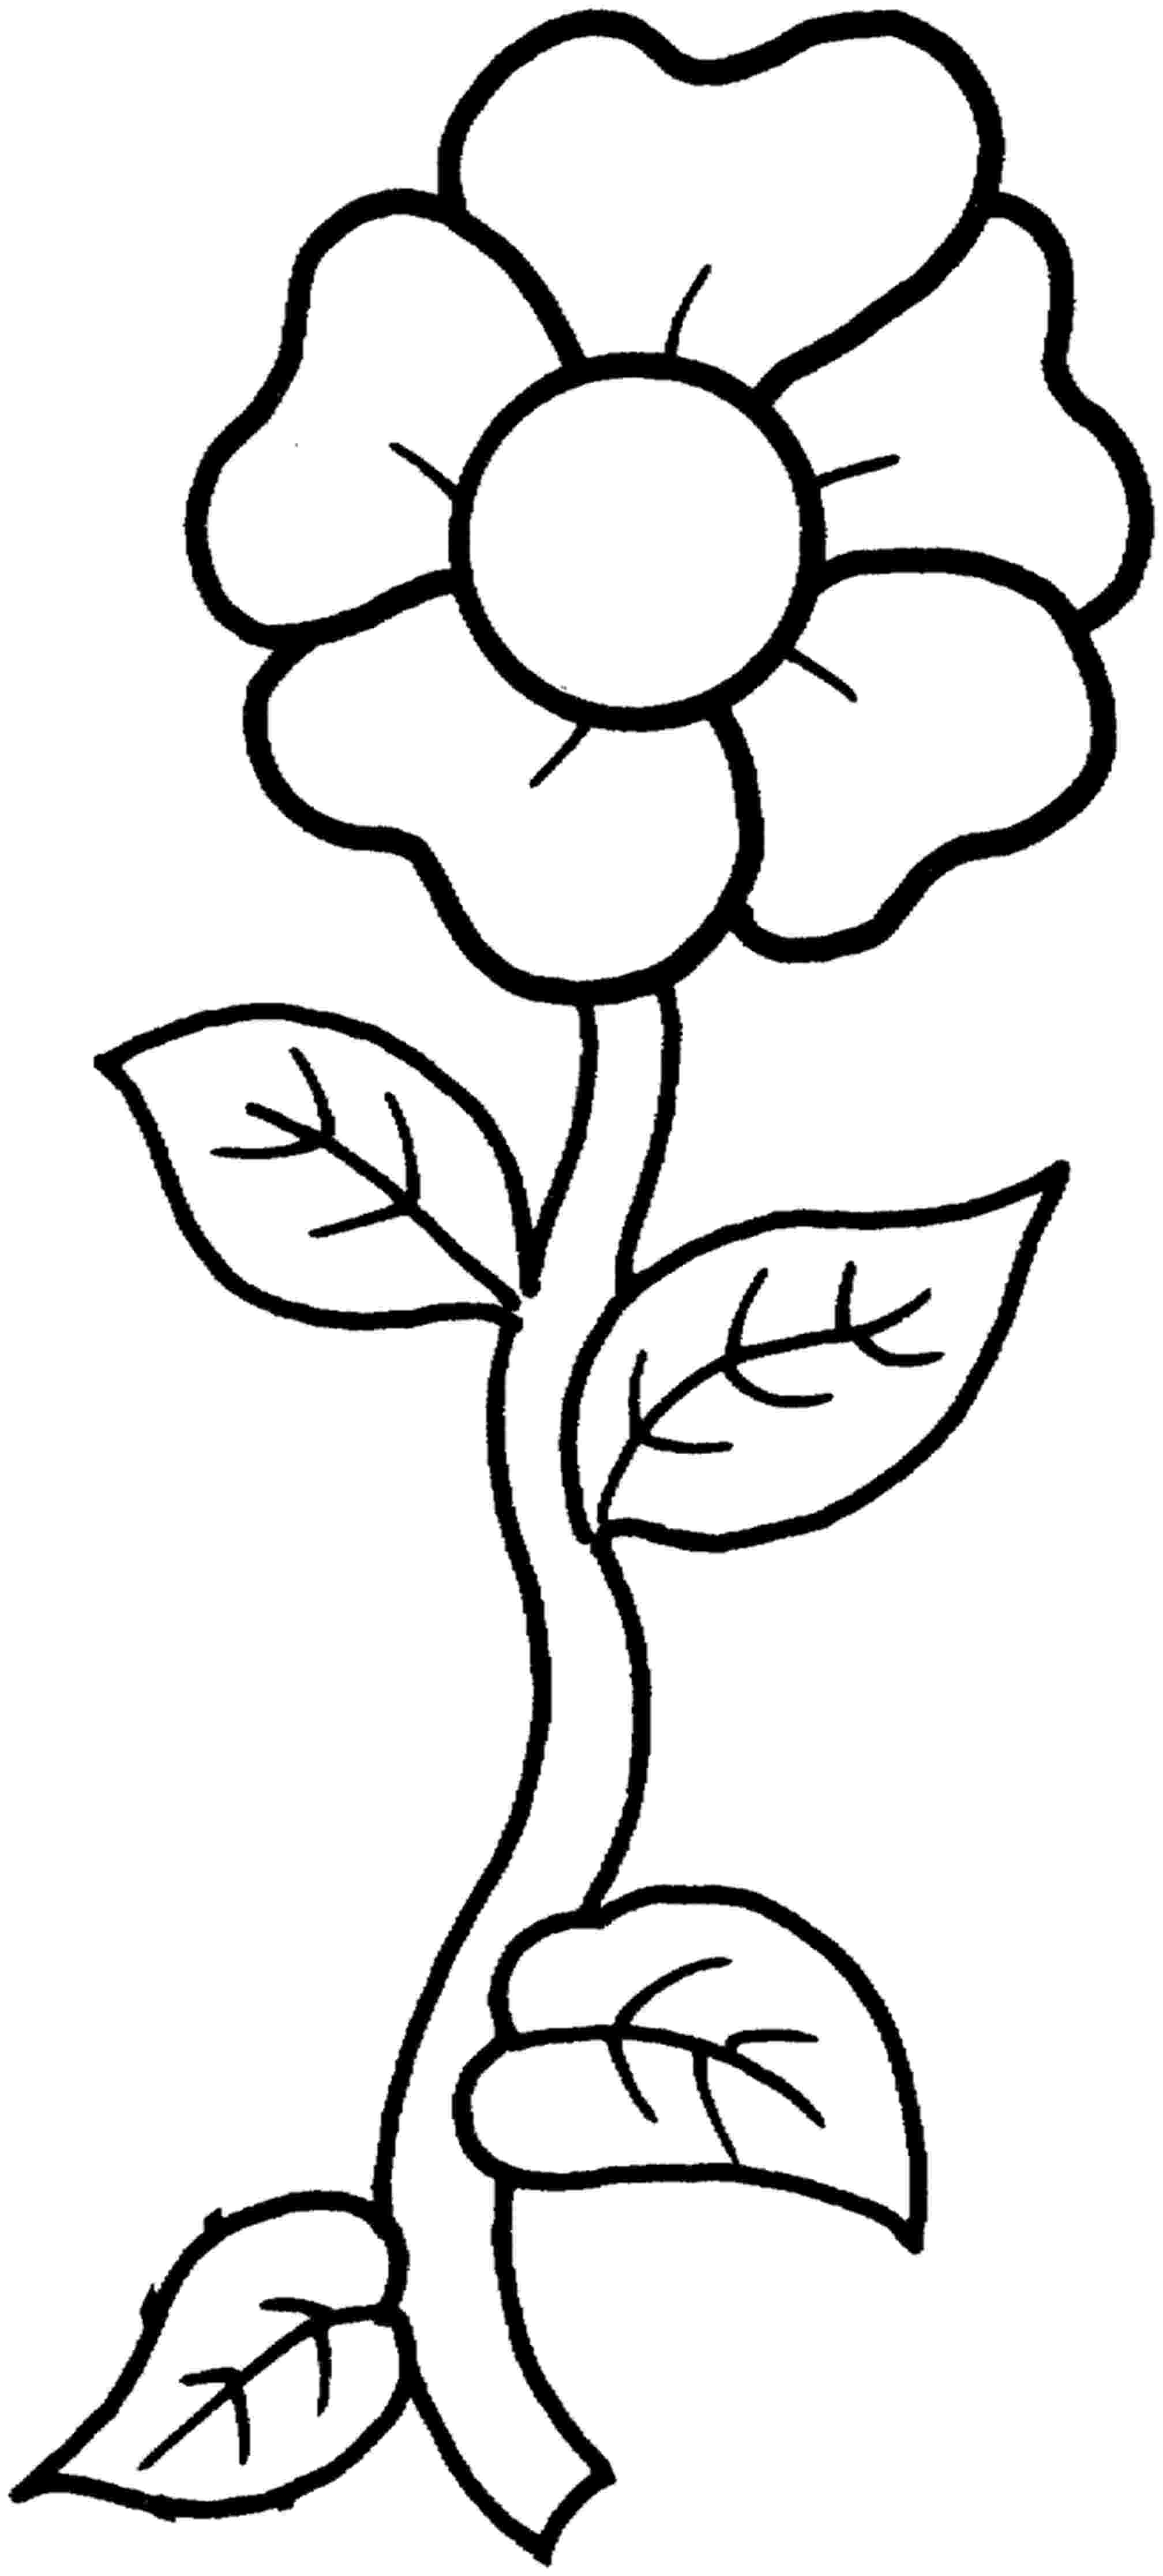 colouring pages for flowers free printable flower coloring pages for kids cool2bkids flowers pages for colouring